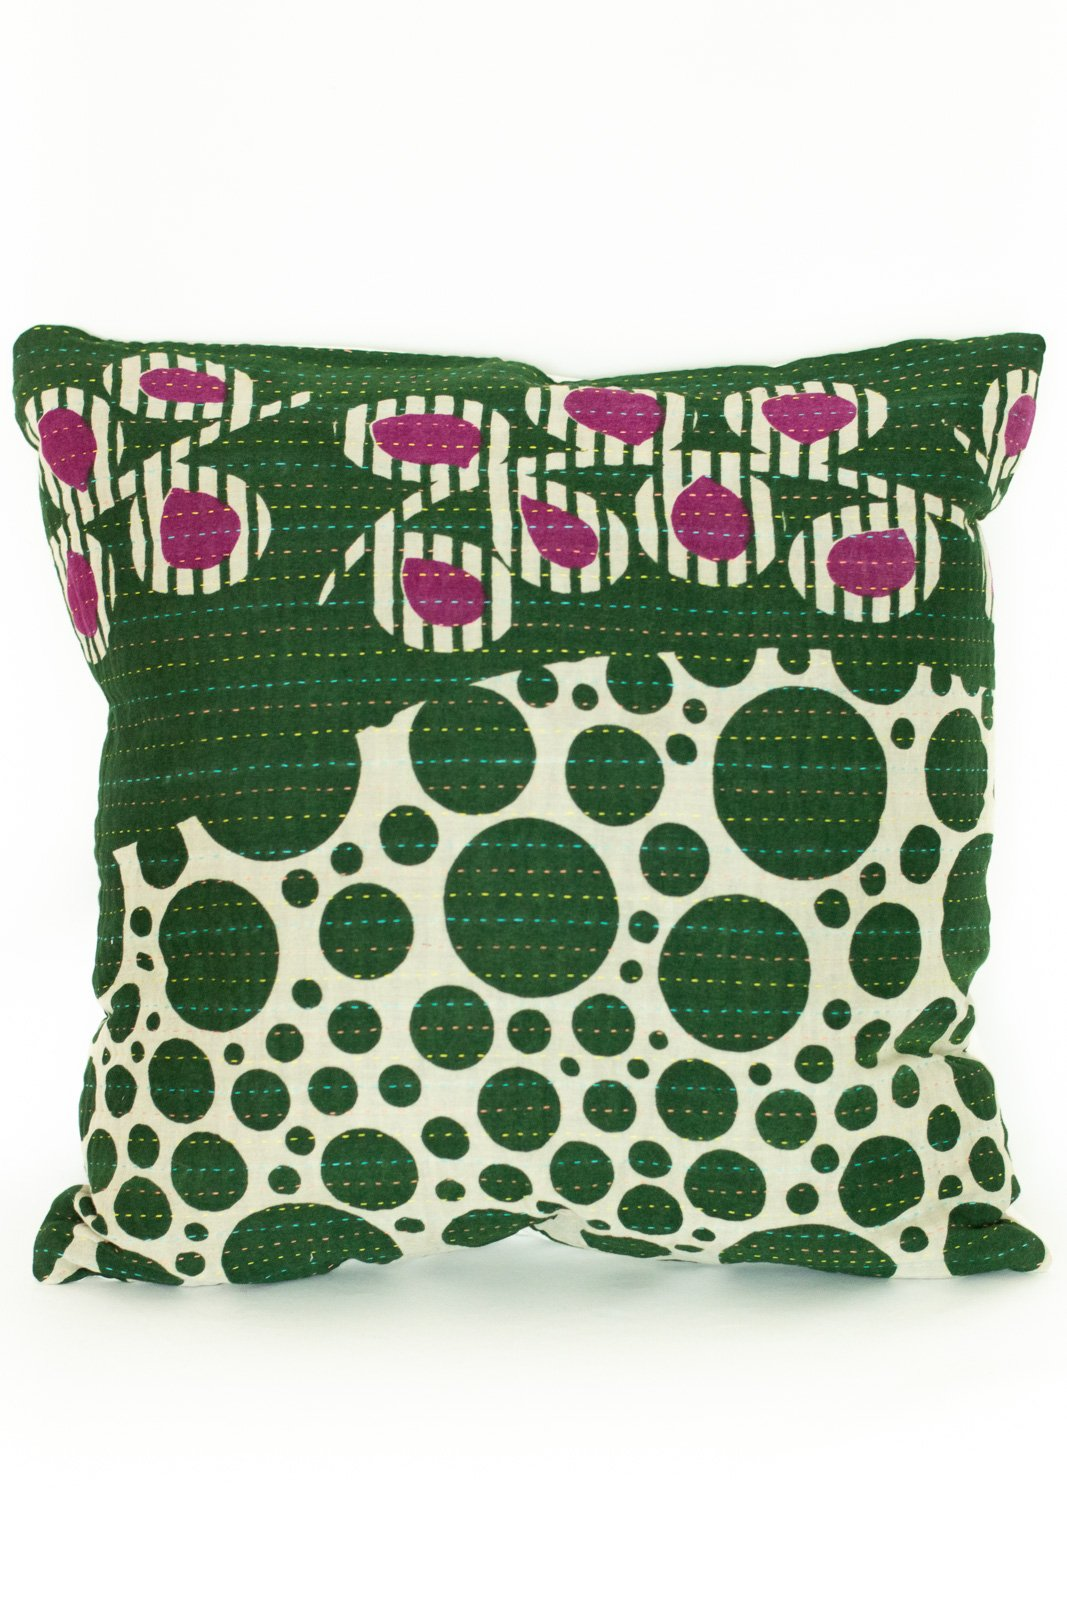 Beauty no. 3 Kantha Pillow Cover